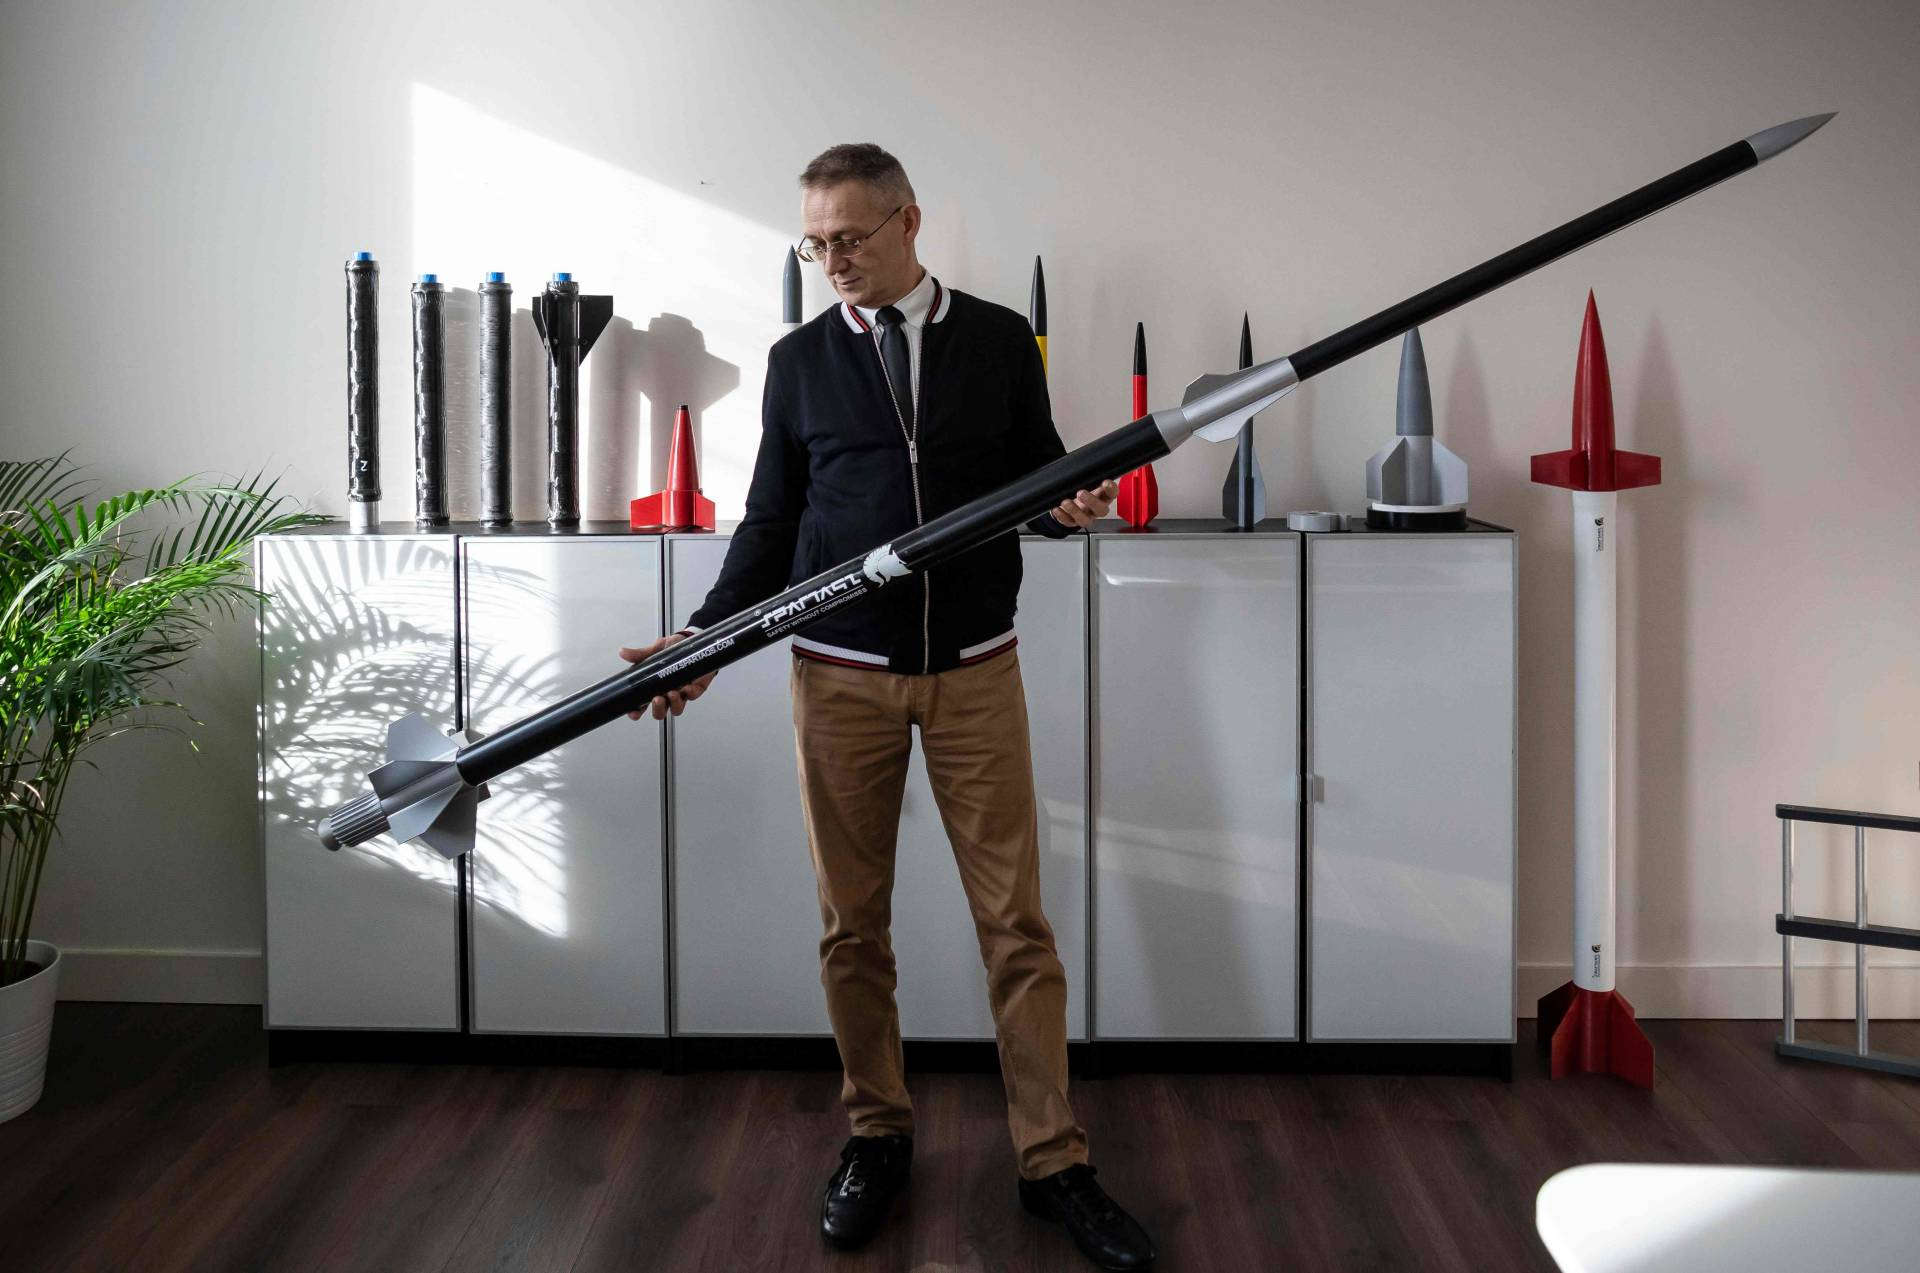 Huczala poses with parts of an Aerostatic Rocket Launcher (ARL) drone at his company's headquarters. The Aerostatic Rocket Launcher (ARL) drone can send a rocket 90 kilometres above the earth's surface, or high enough to place a nanosatellite in orbit, according to Huczala.